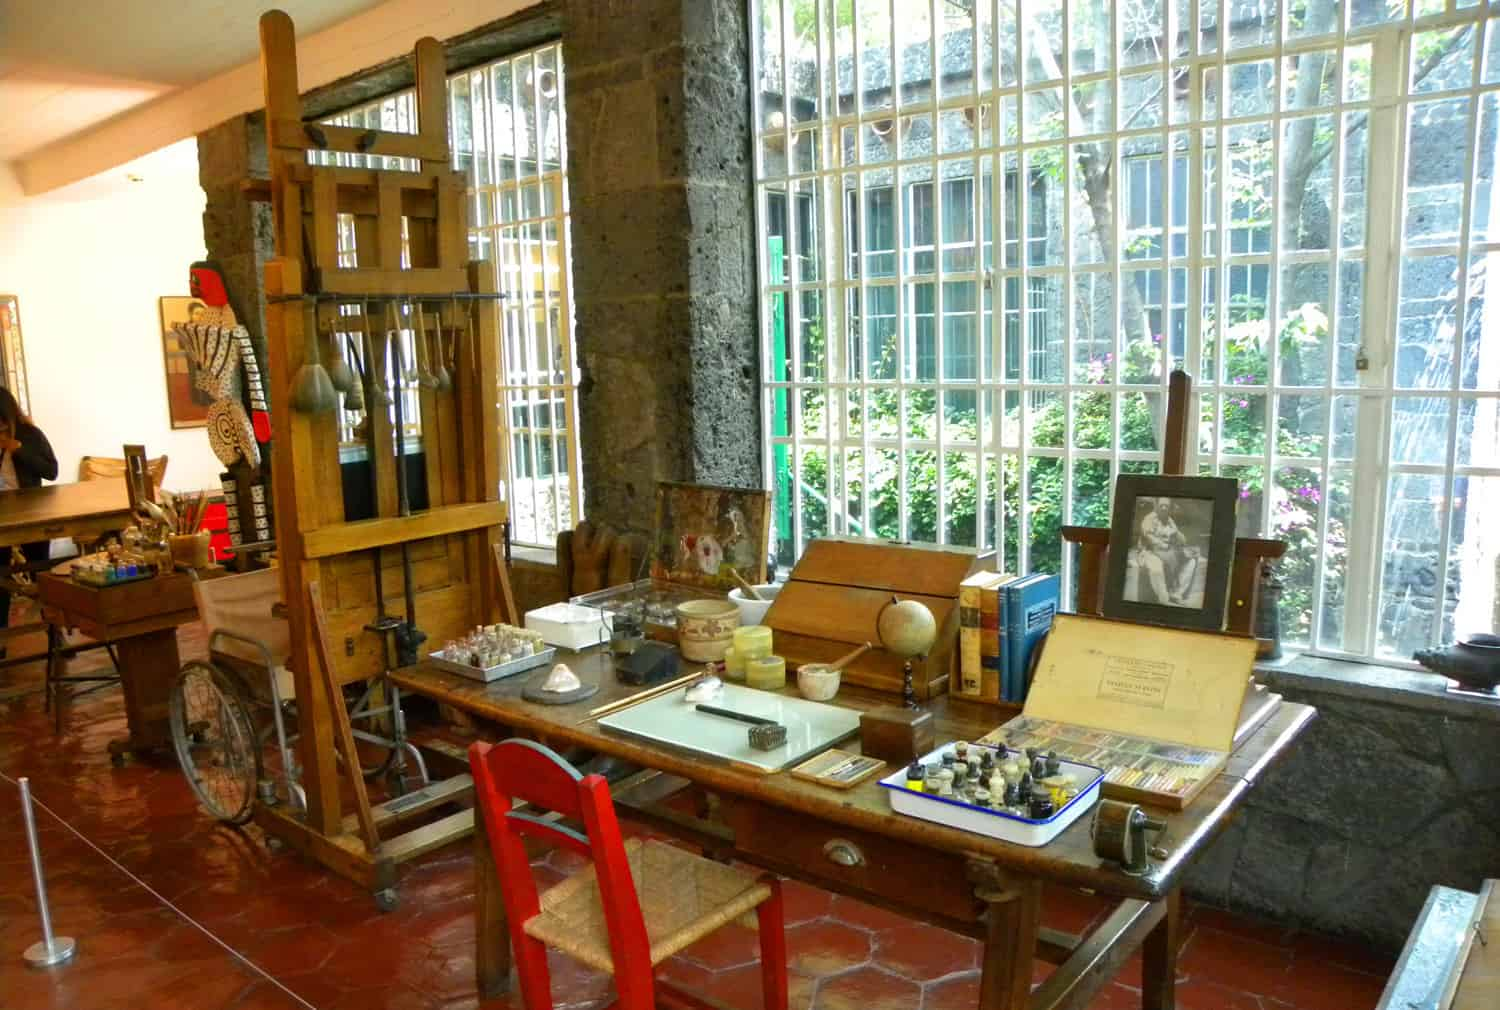 Frida Kahlo Museum, Mexico City. Things to See and Do in Mexico City (Part 2)